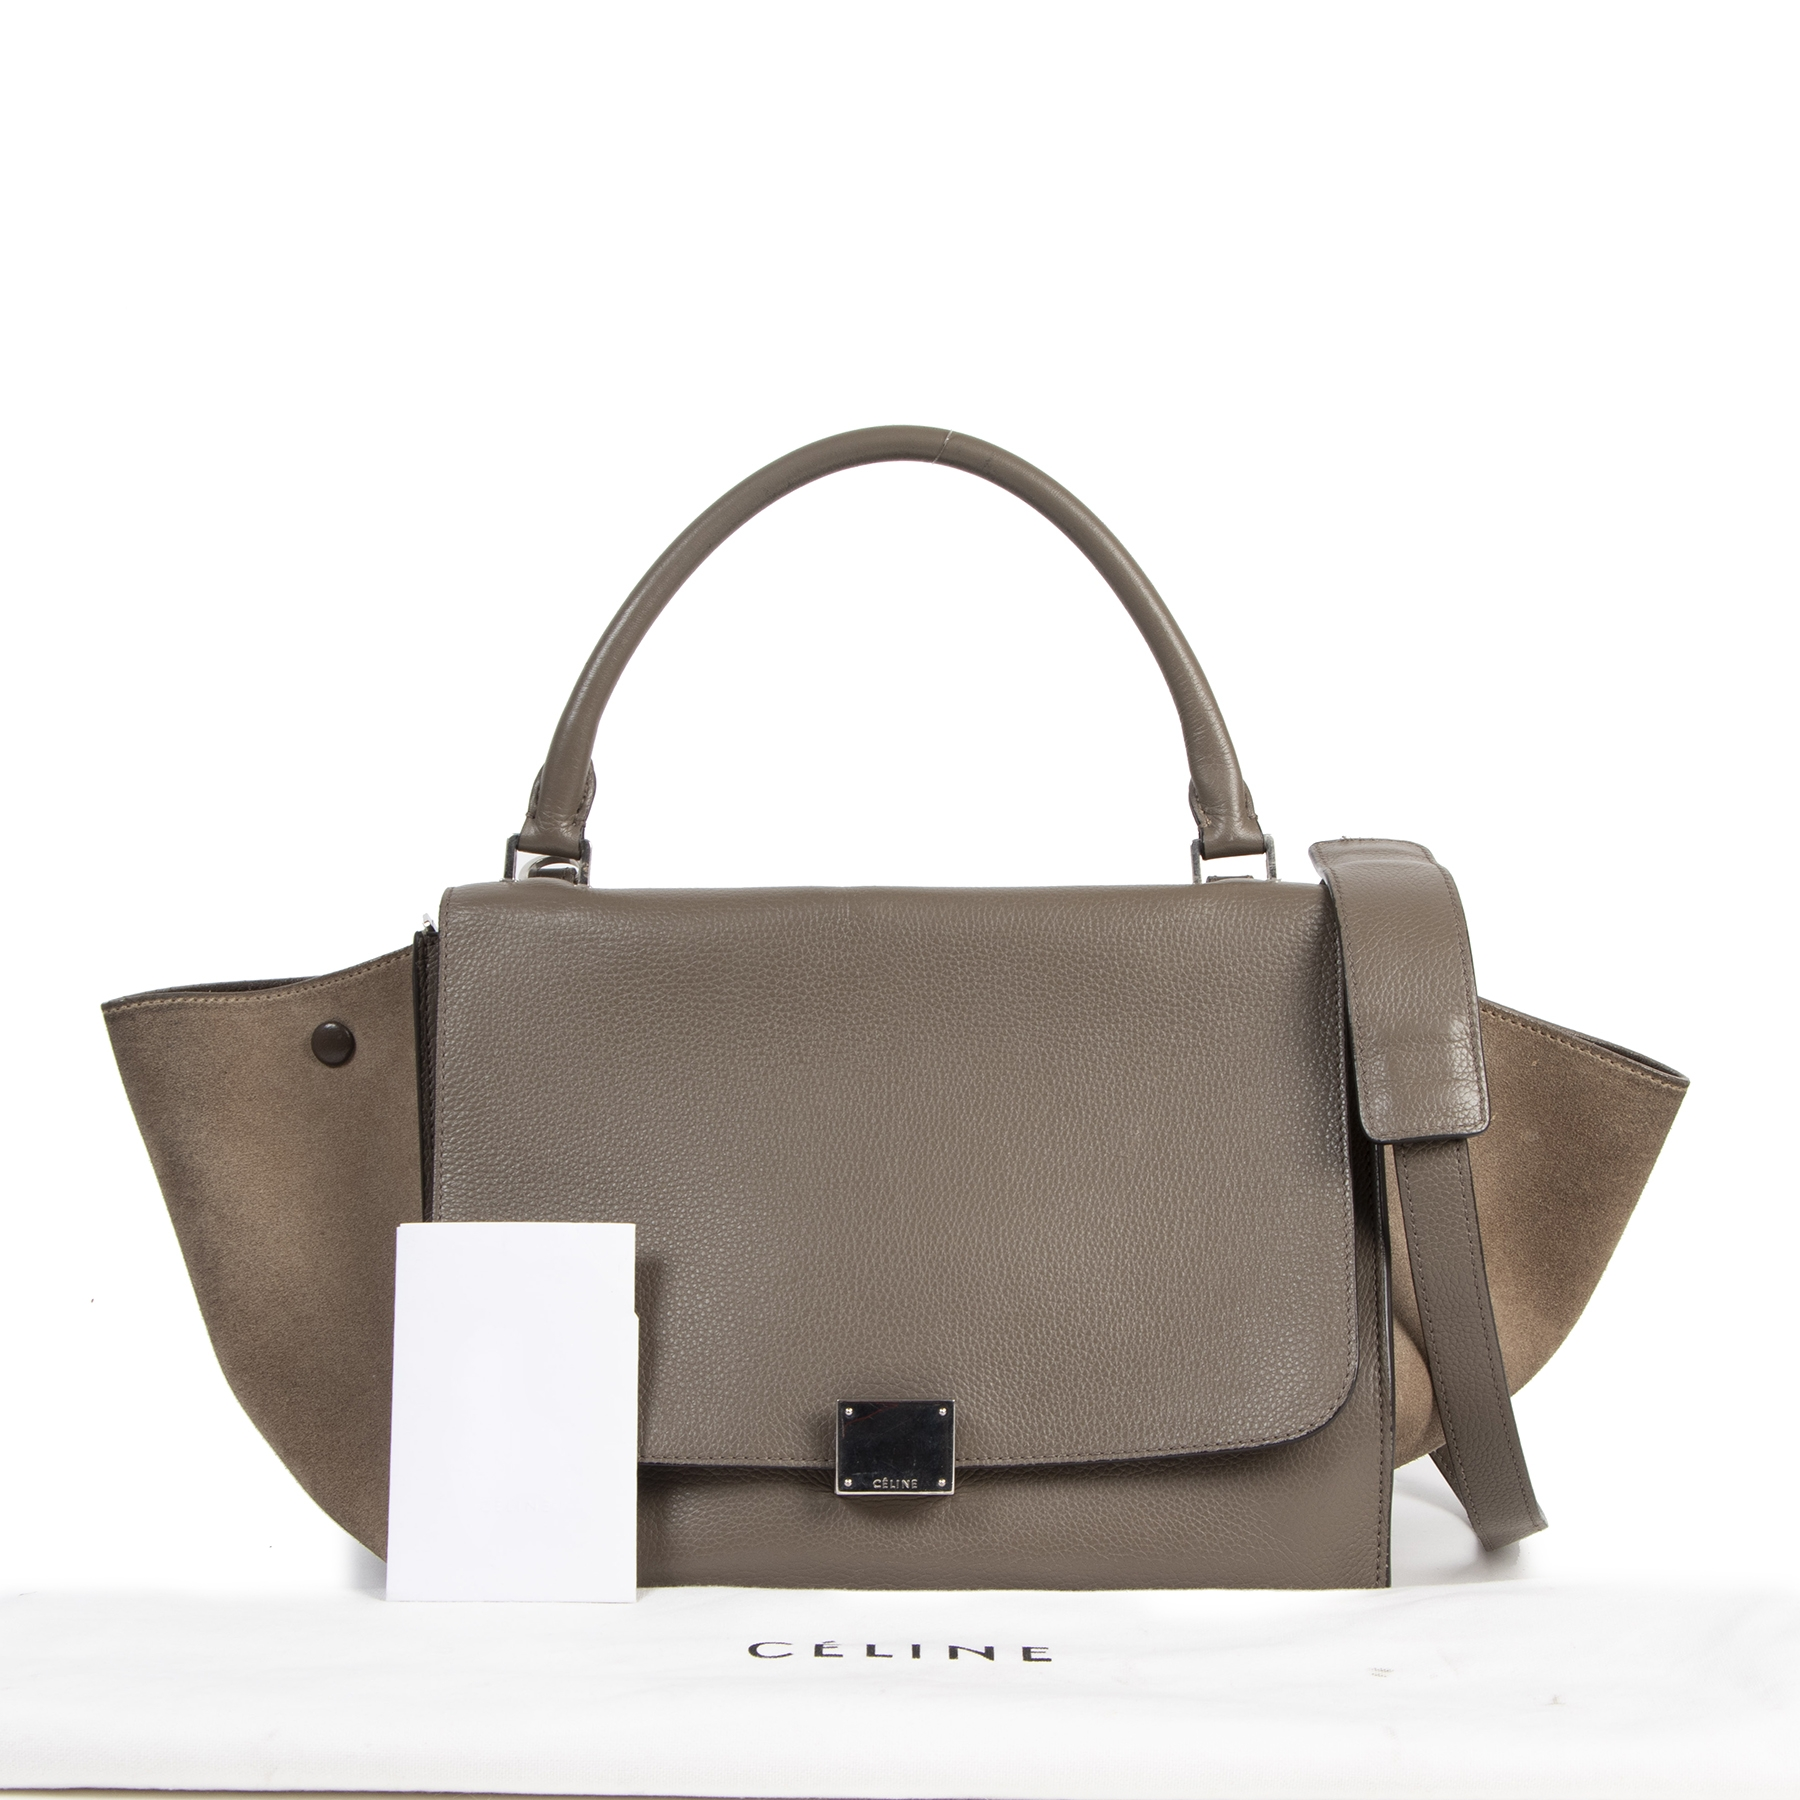 Authentieke tweedehands vintage Céline Khaki Suede Leather Medium Trapeze Bag koop online webshop LabelLOV